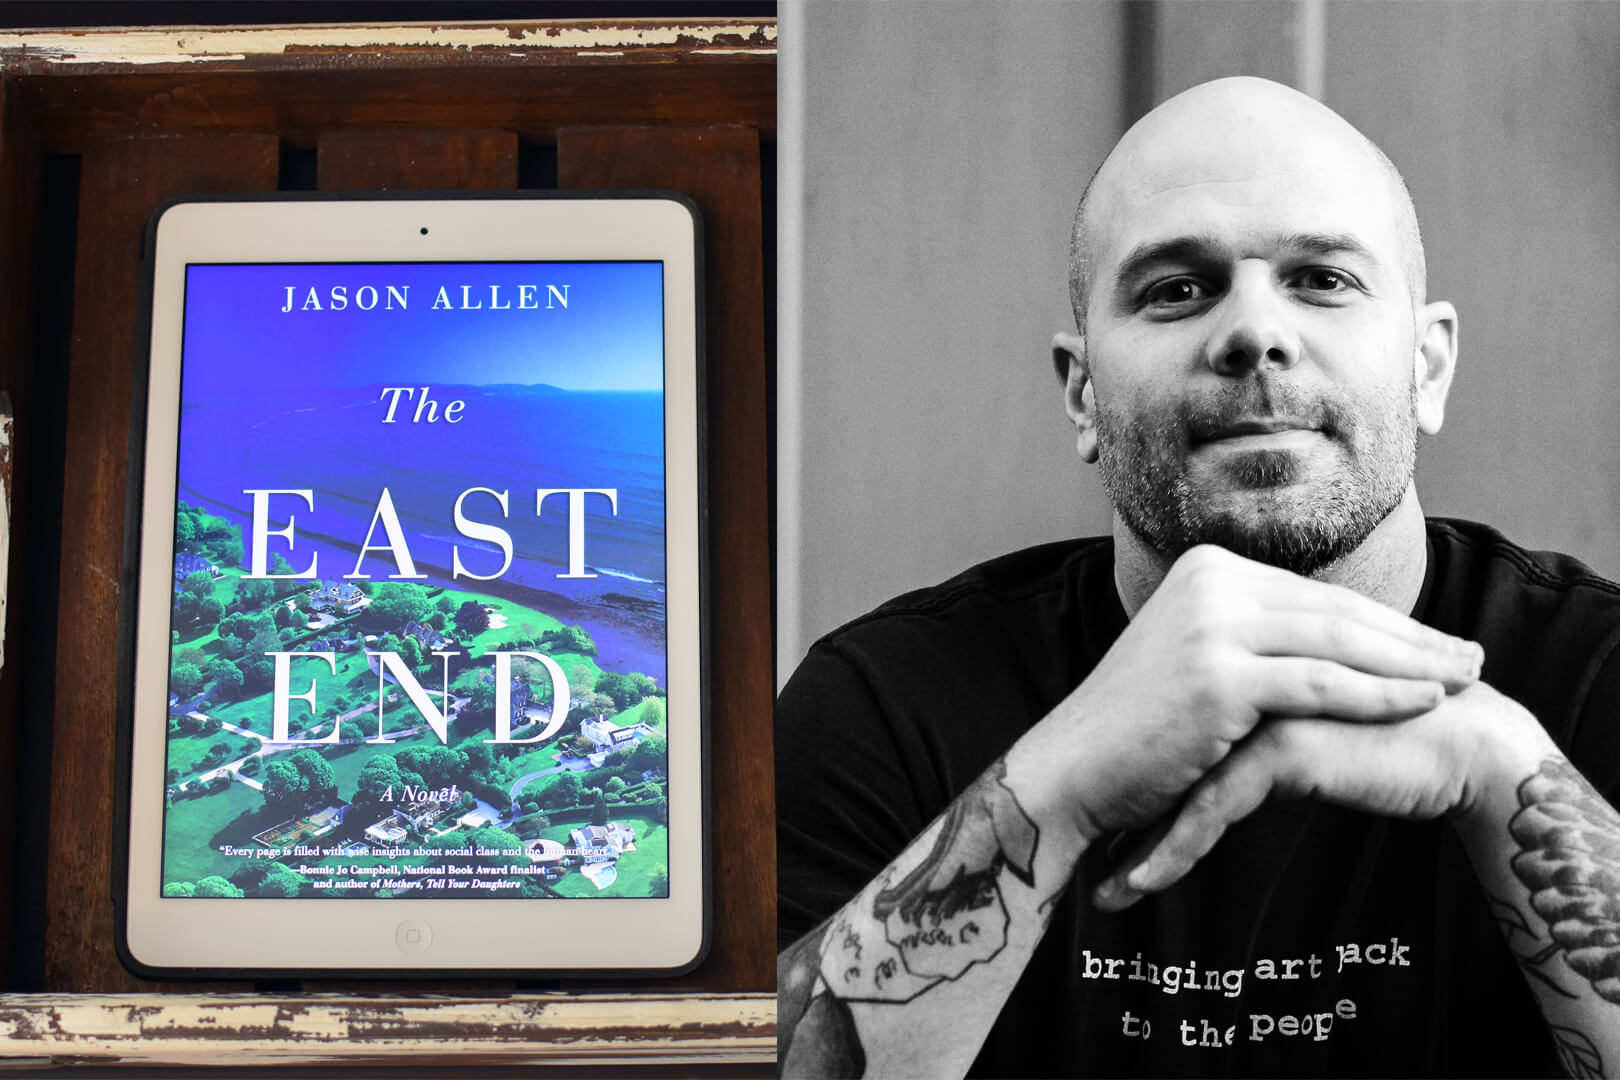 The East End Jason Allen Author Q&A - Book Club Chat